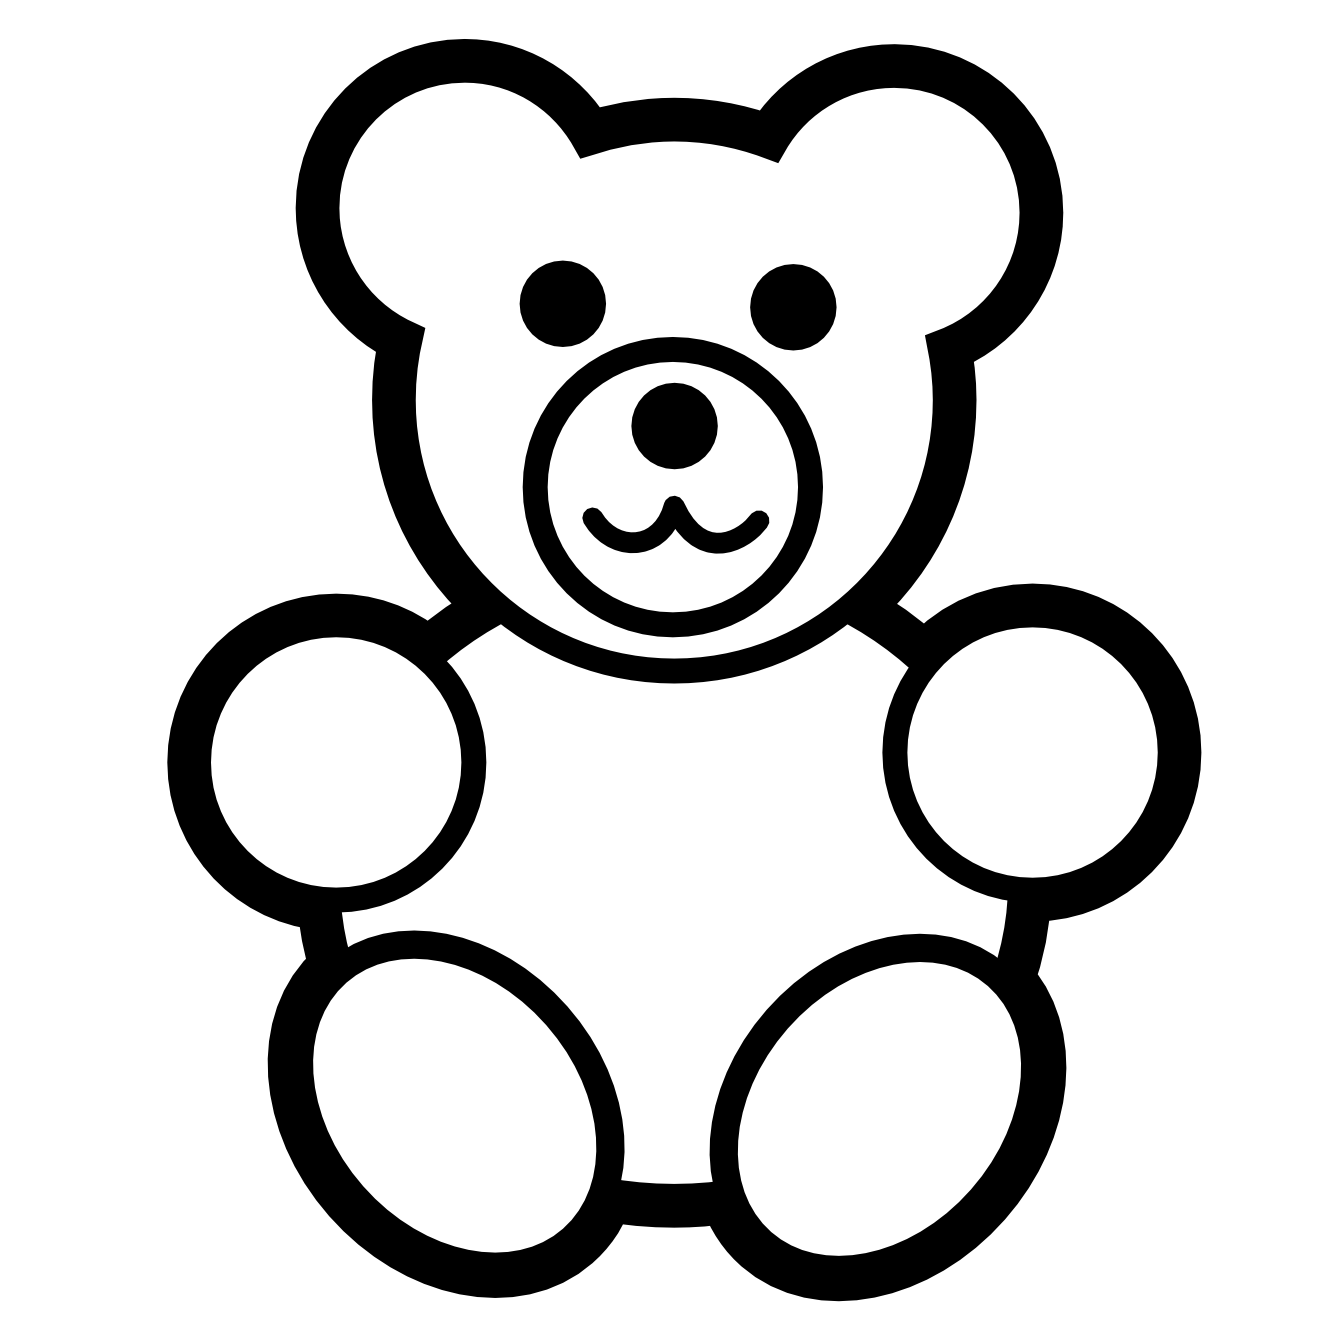 graphic freeuse library Awana clipart black and white. Christmas teddy bear net